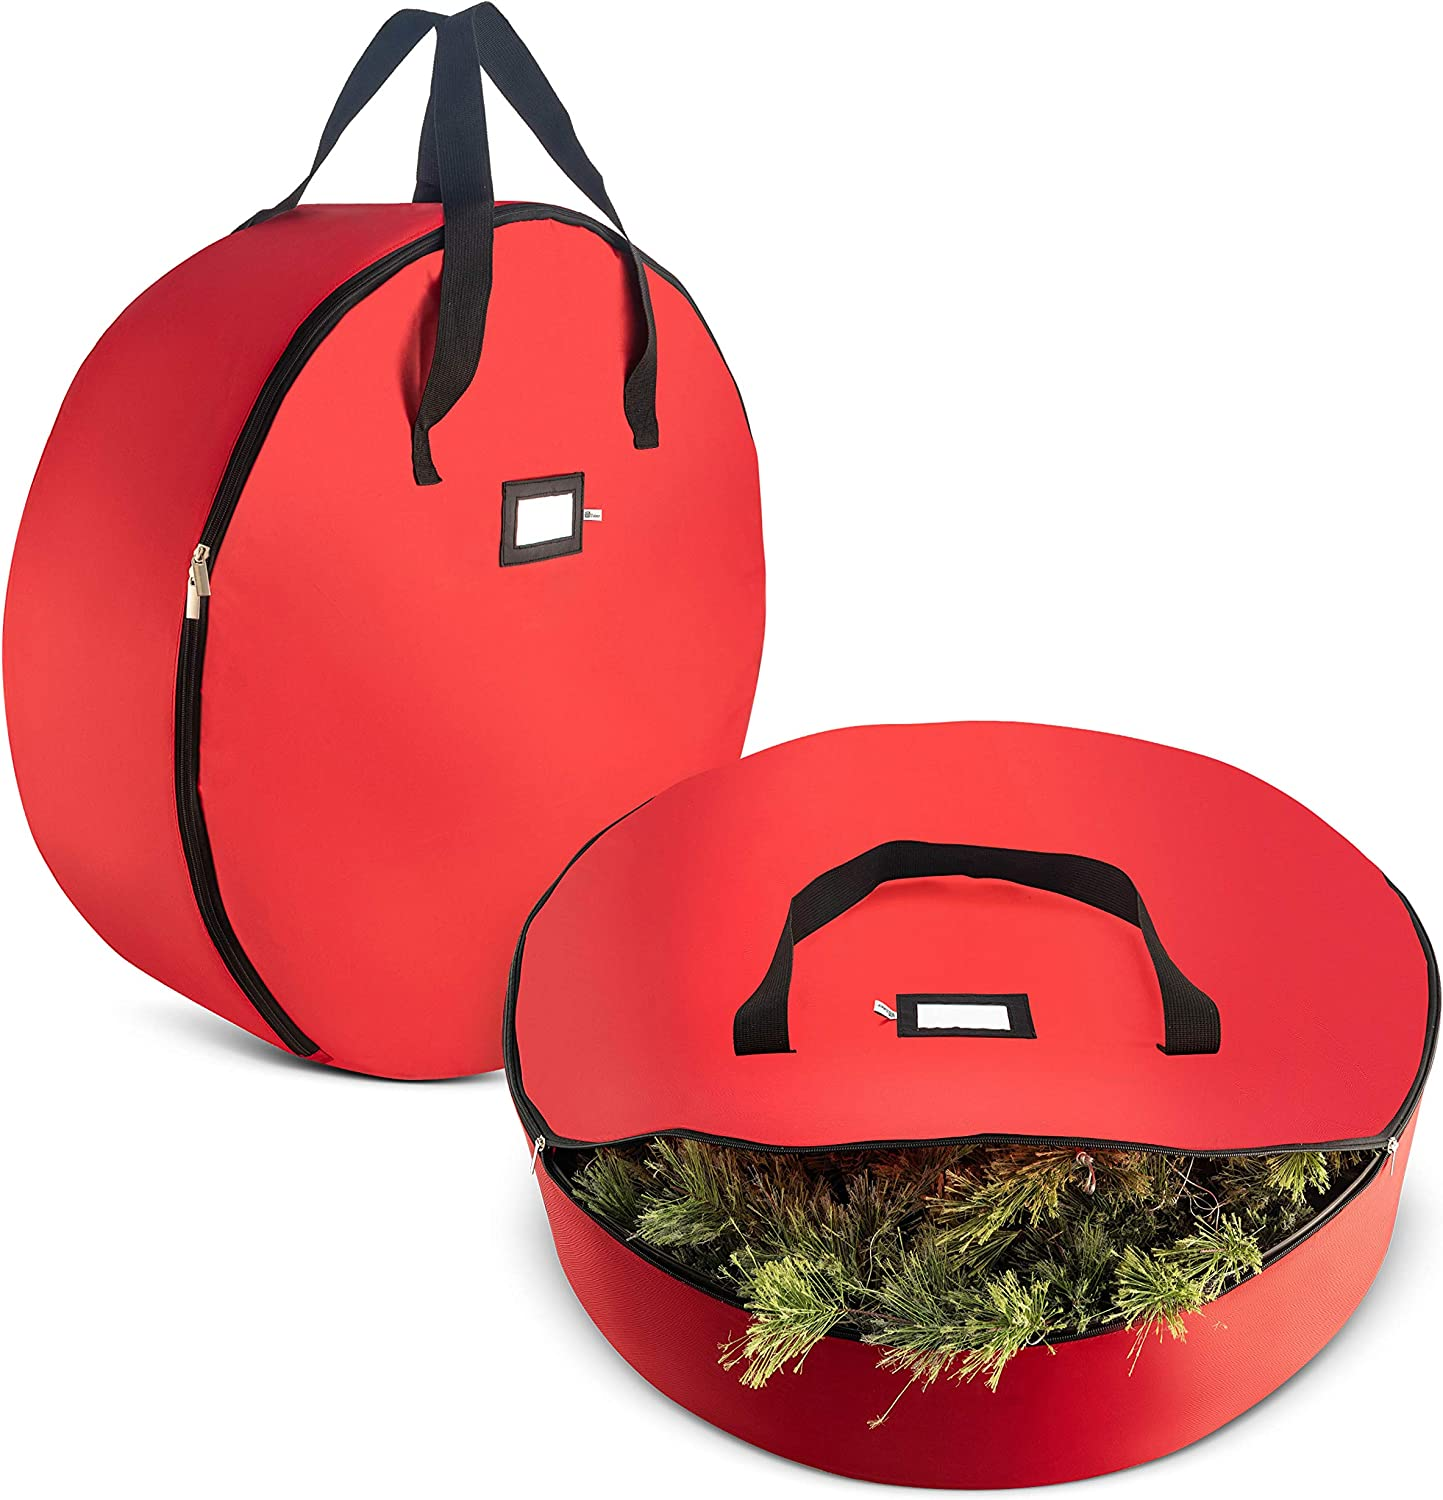 36 Inches Xmas Holiday Wreath Container Organiser Holder with Handles,Zippered Protect Wreath from Dust Moisture Xmas//Christmas Wreath Storage Bag